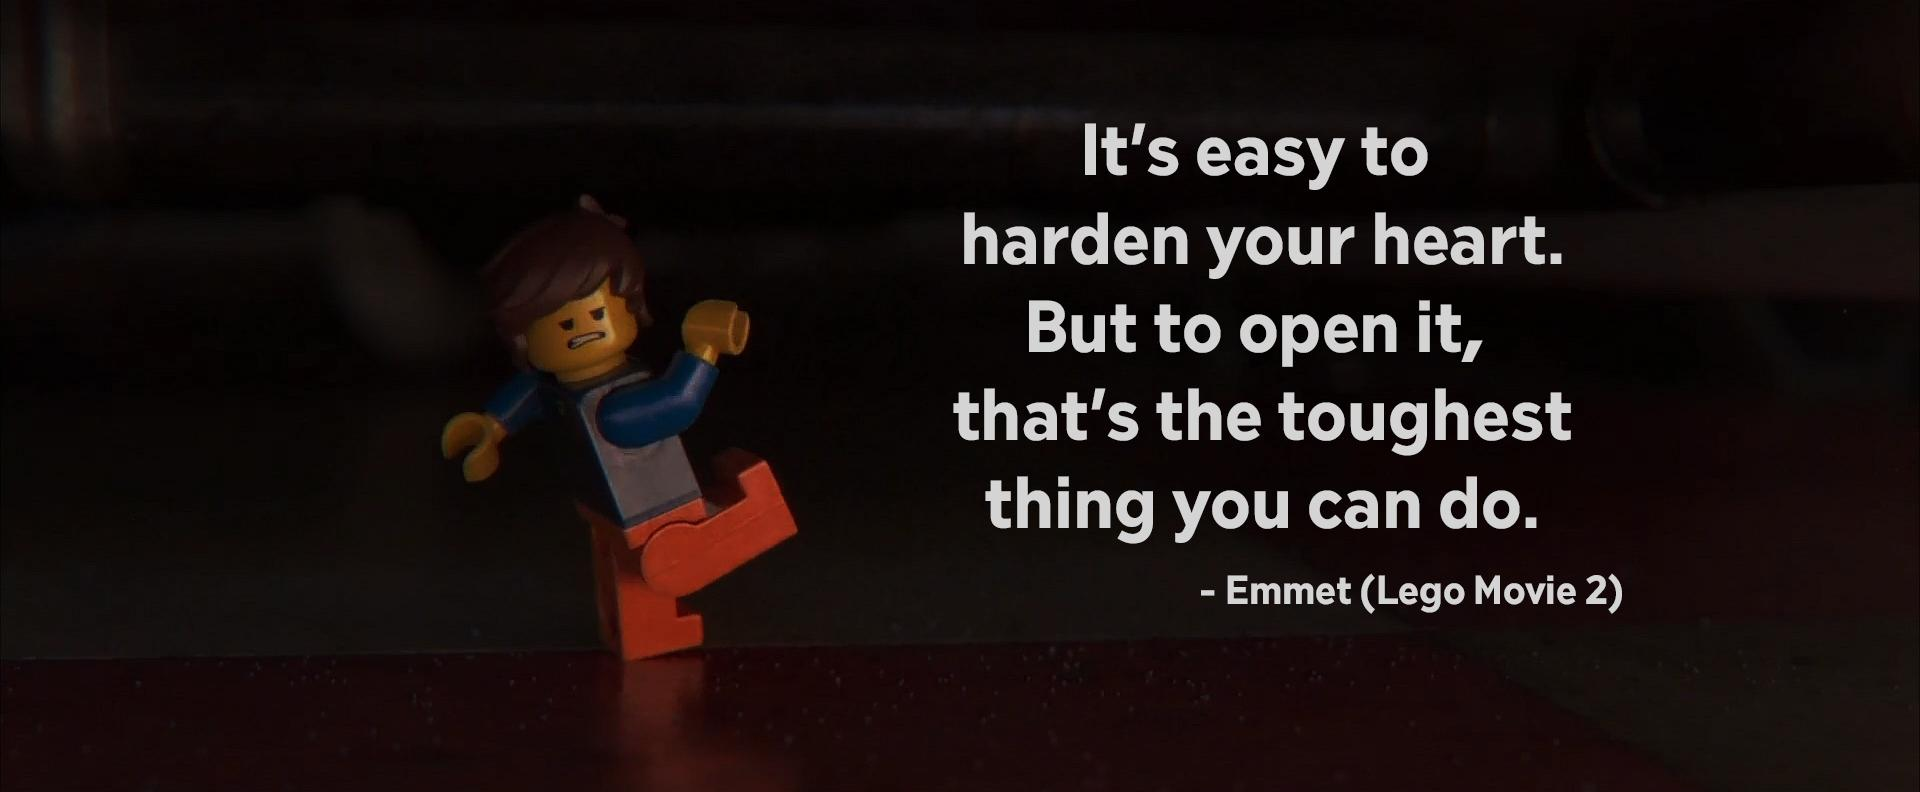 """It's easy to harden your heart. But…"" – Emmet (Lego Movie 2) [1920×1080]"